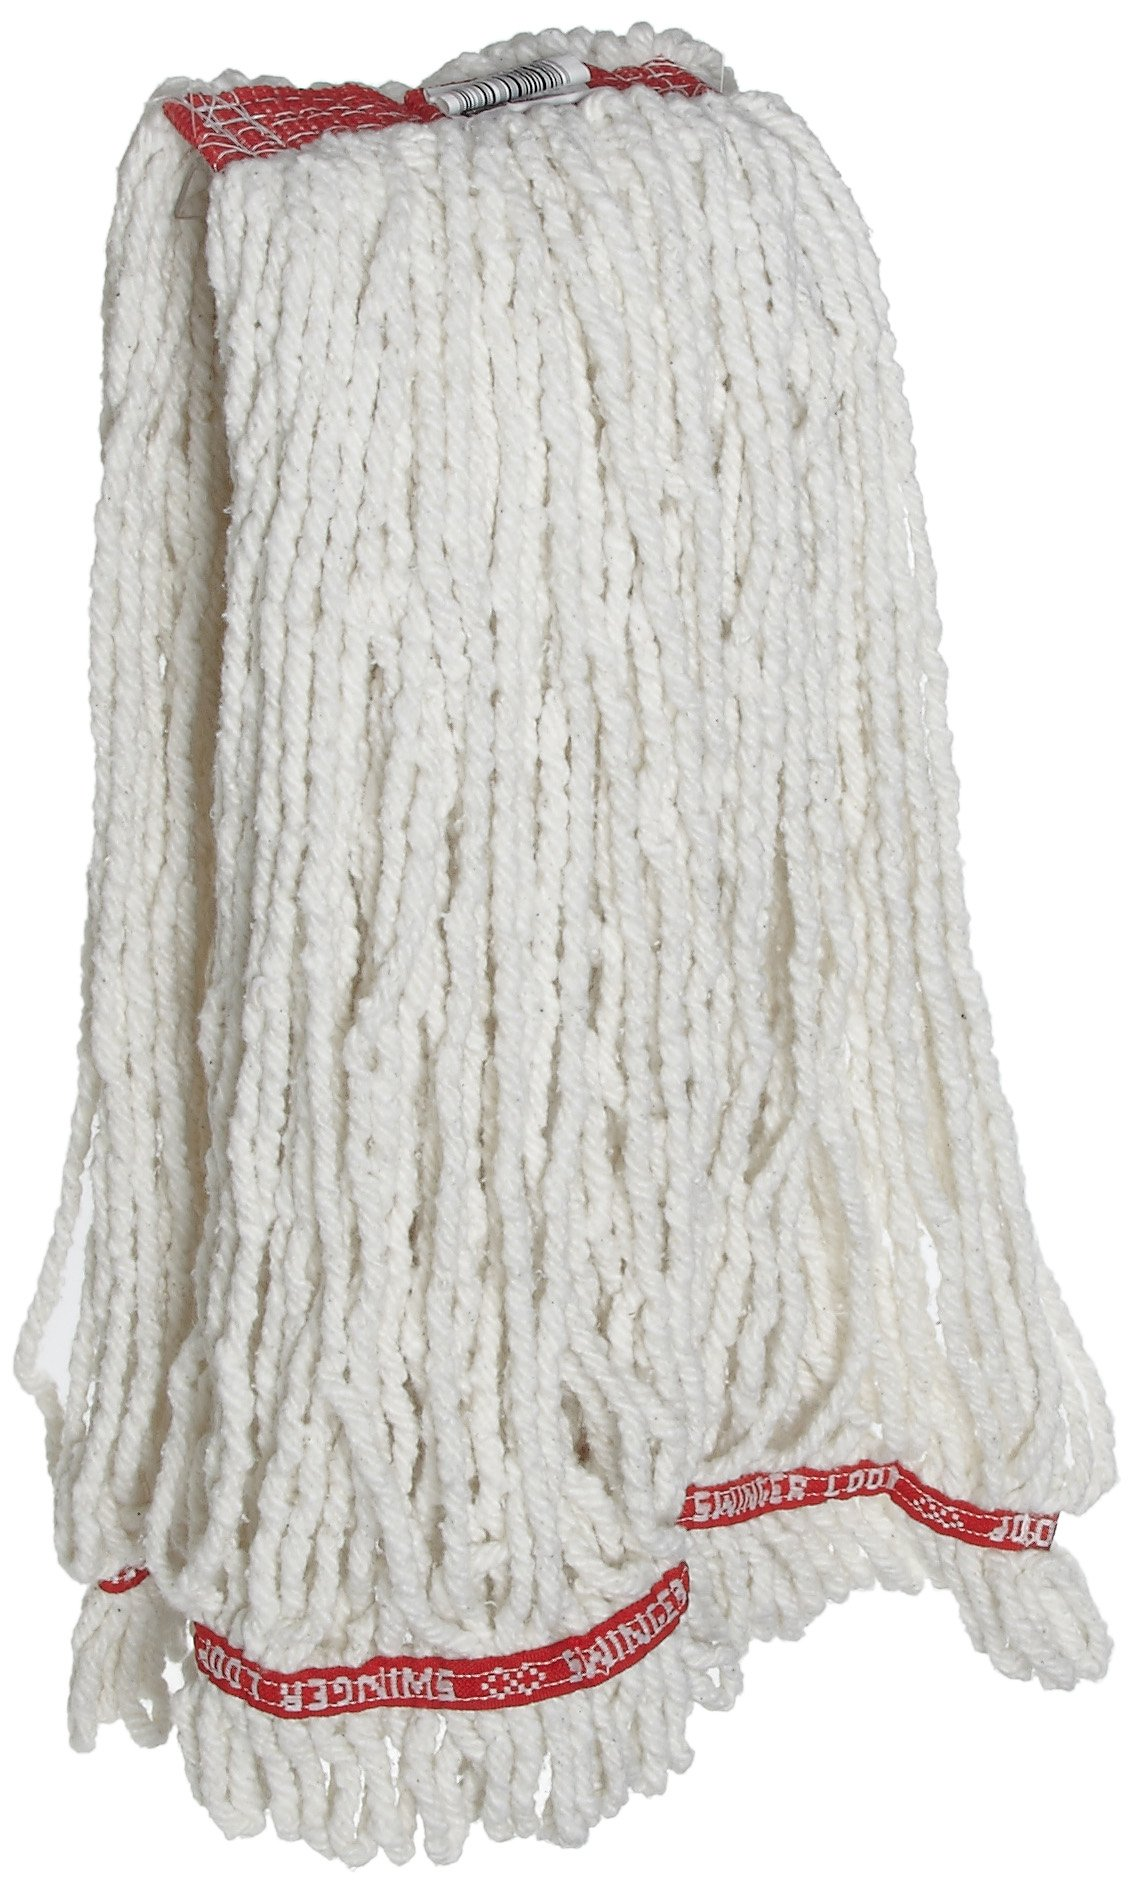 Rubbermaid Commercial Swinger Wet Mop, Large, White, Pack of 6, FGC21306WH00